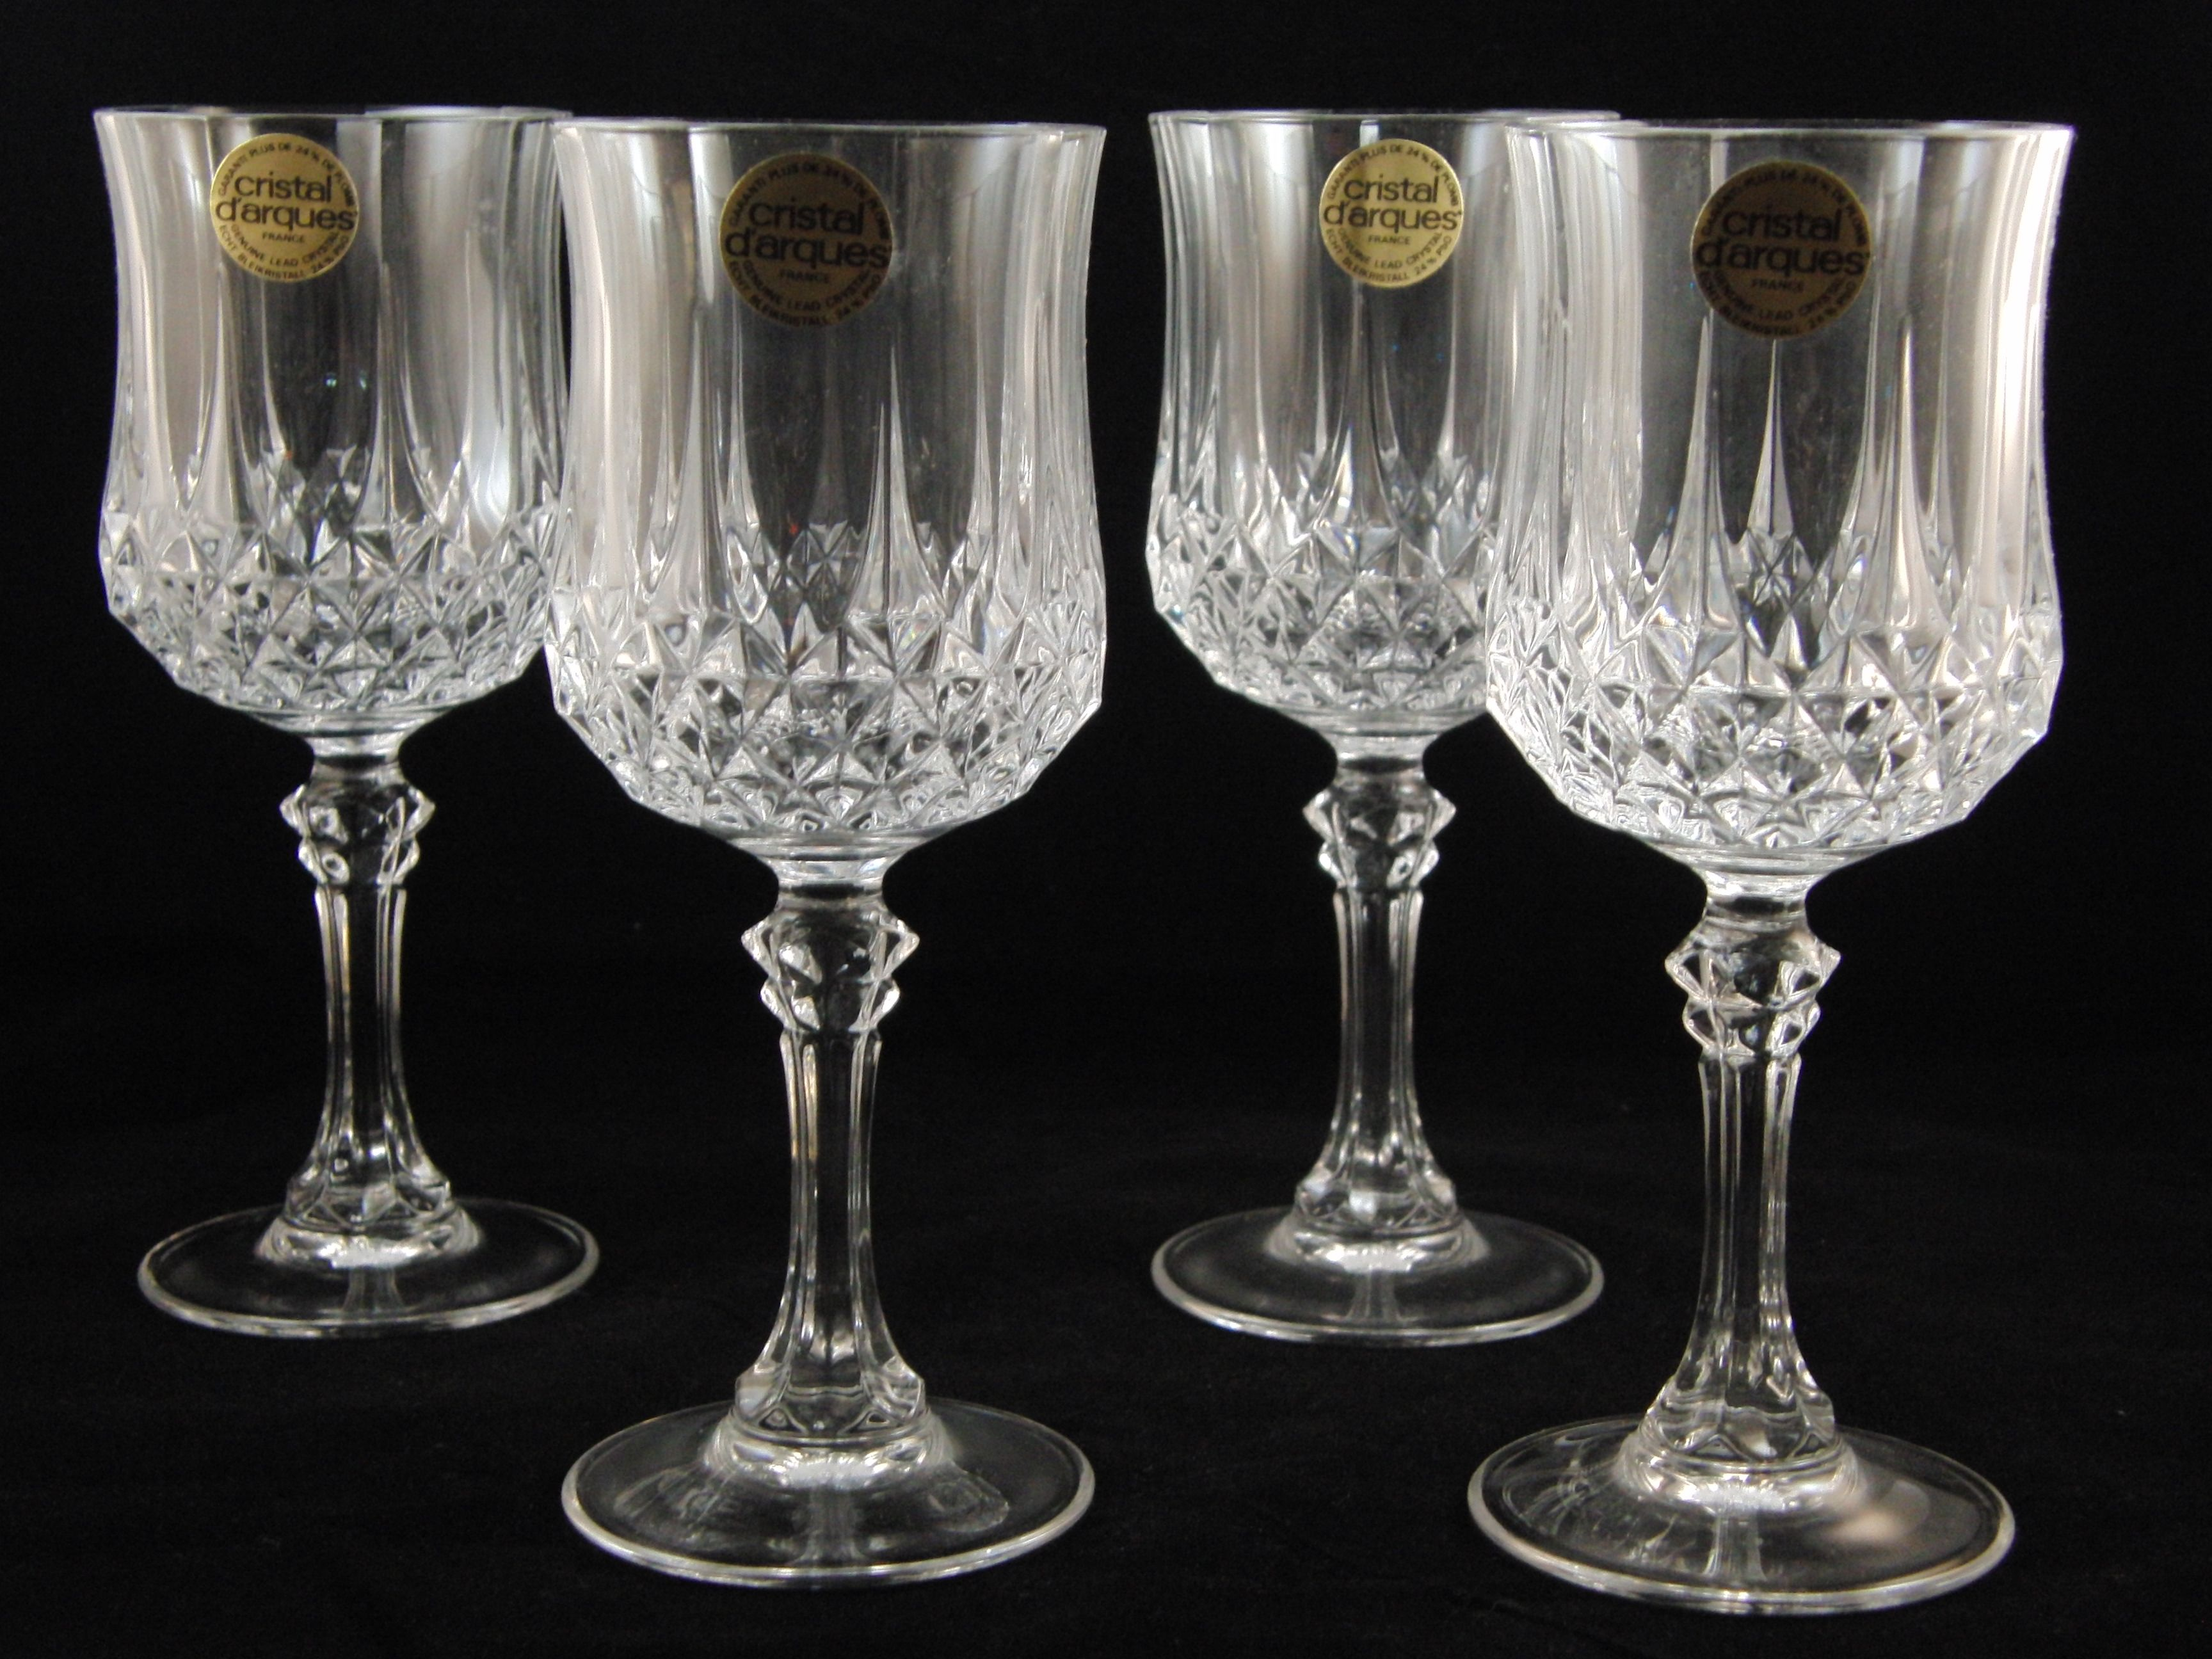 Crystal Stemware Wine Glasses Genuine Lead Crystal 4 Longchamp Glasses Wine Glasses By